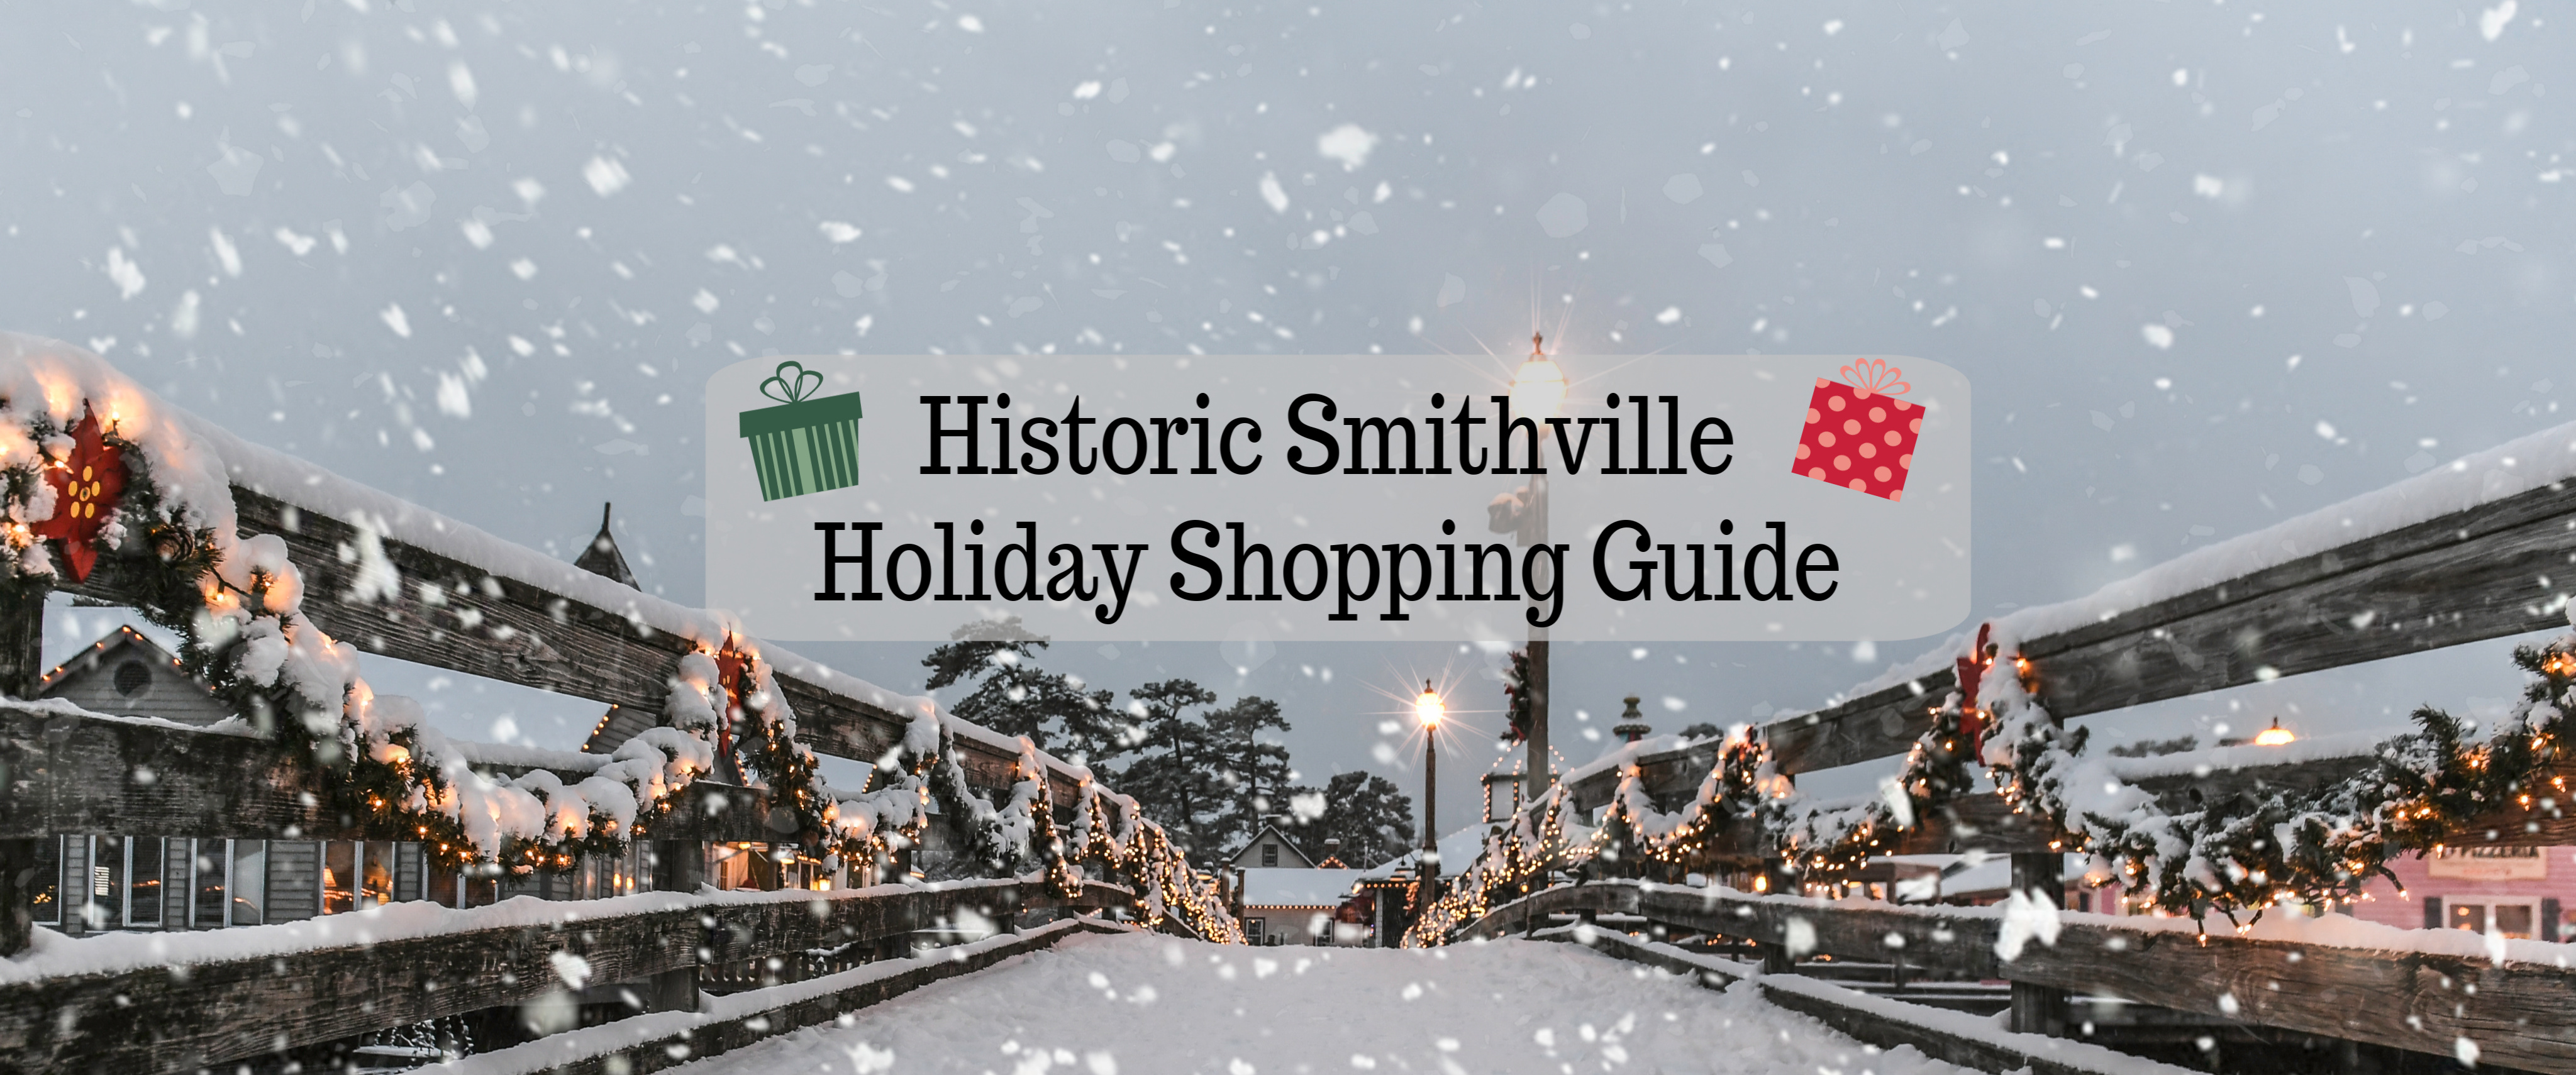 Historic Smithville Holiday Shopping Guide